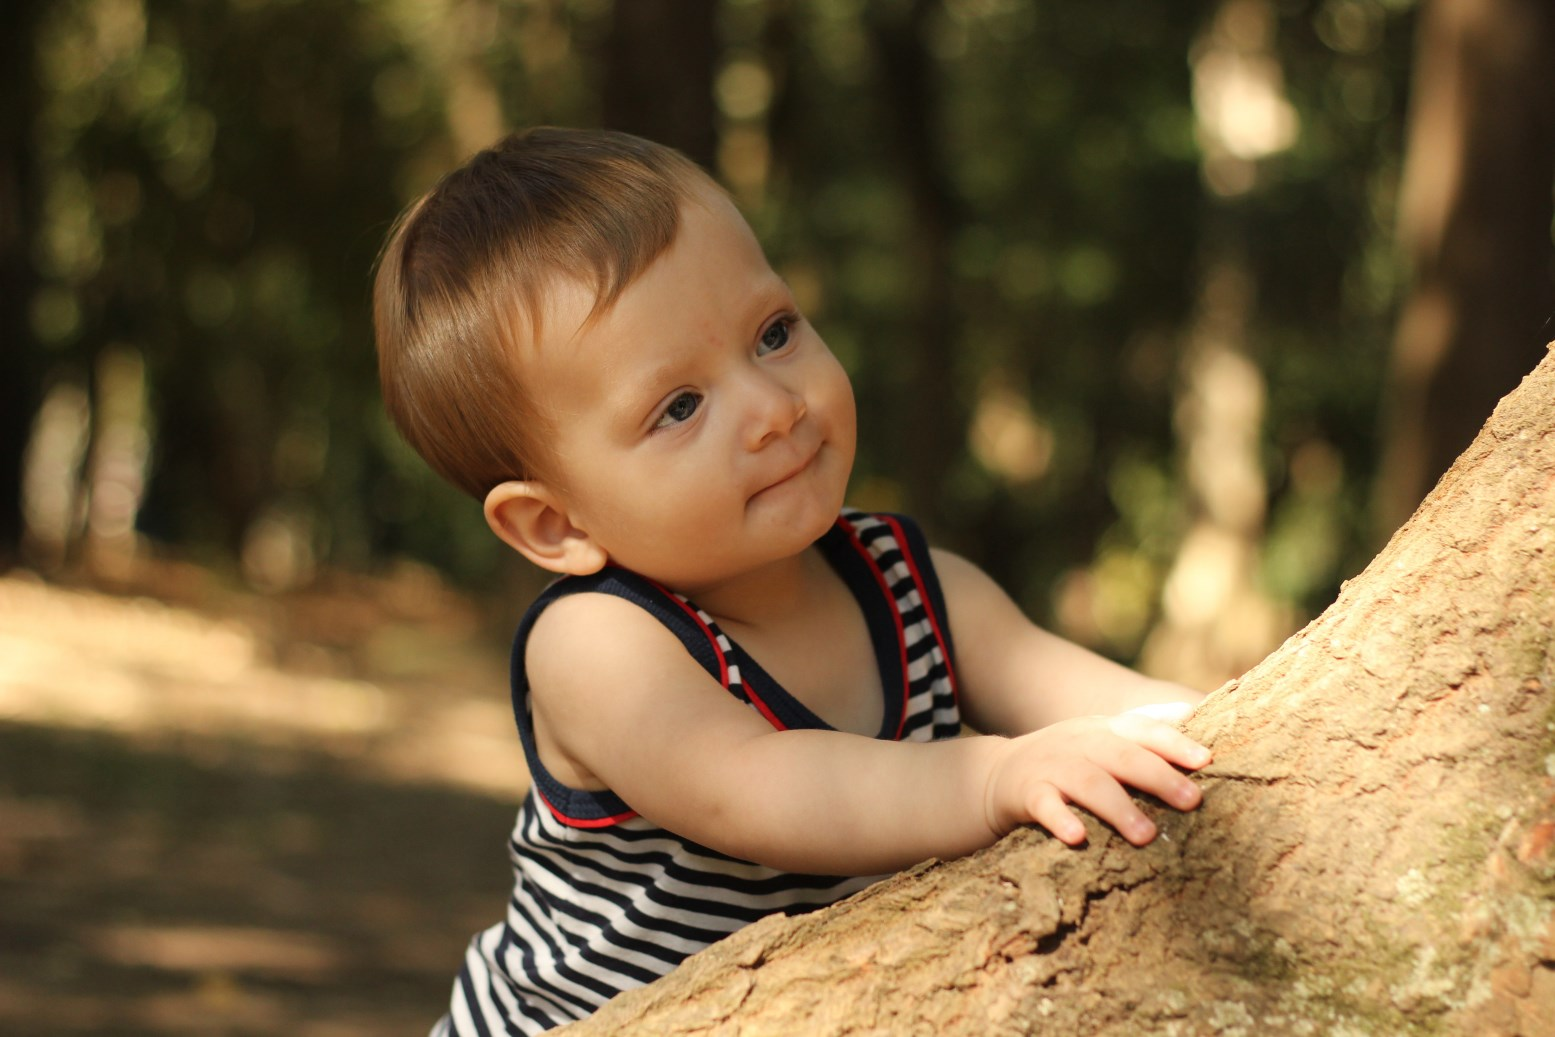 baby boy thoughtfully looking up a tree he is climbing.